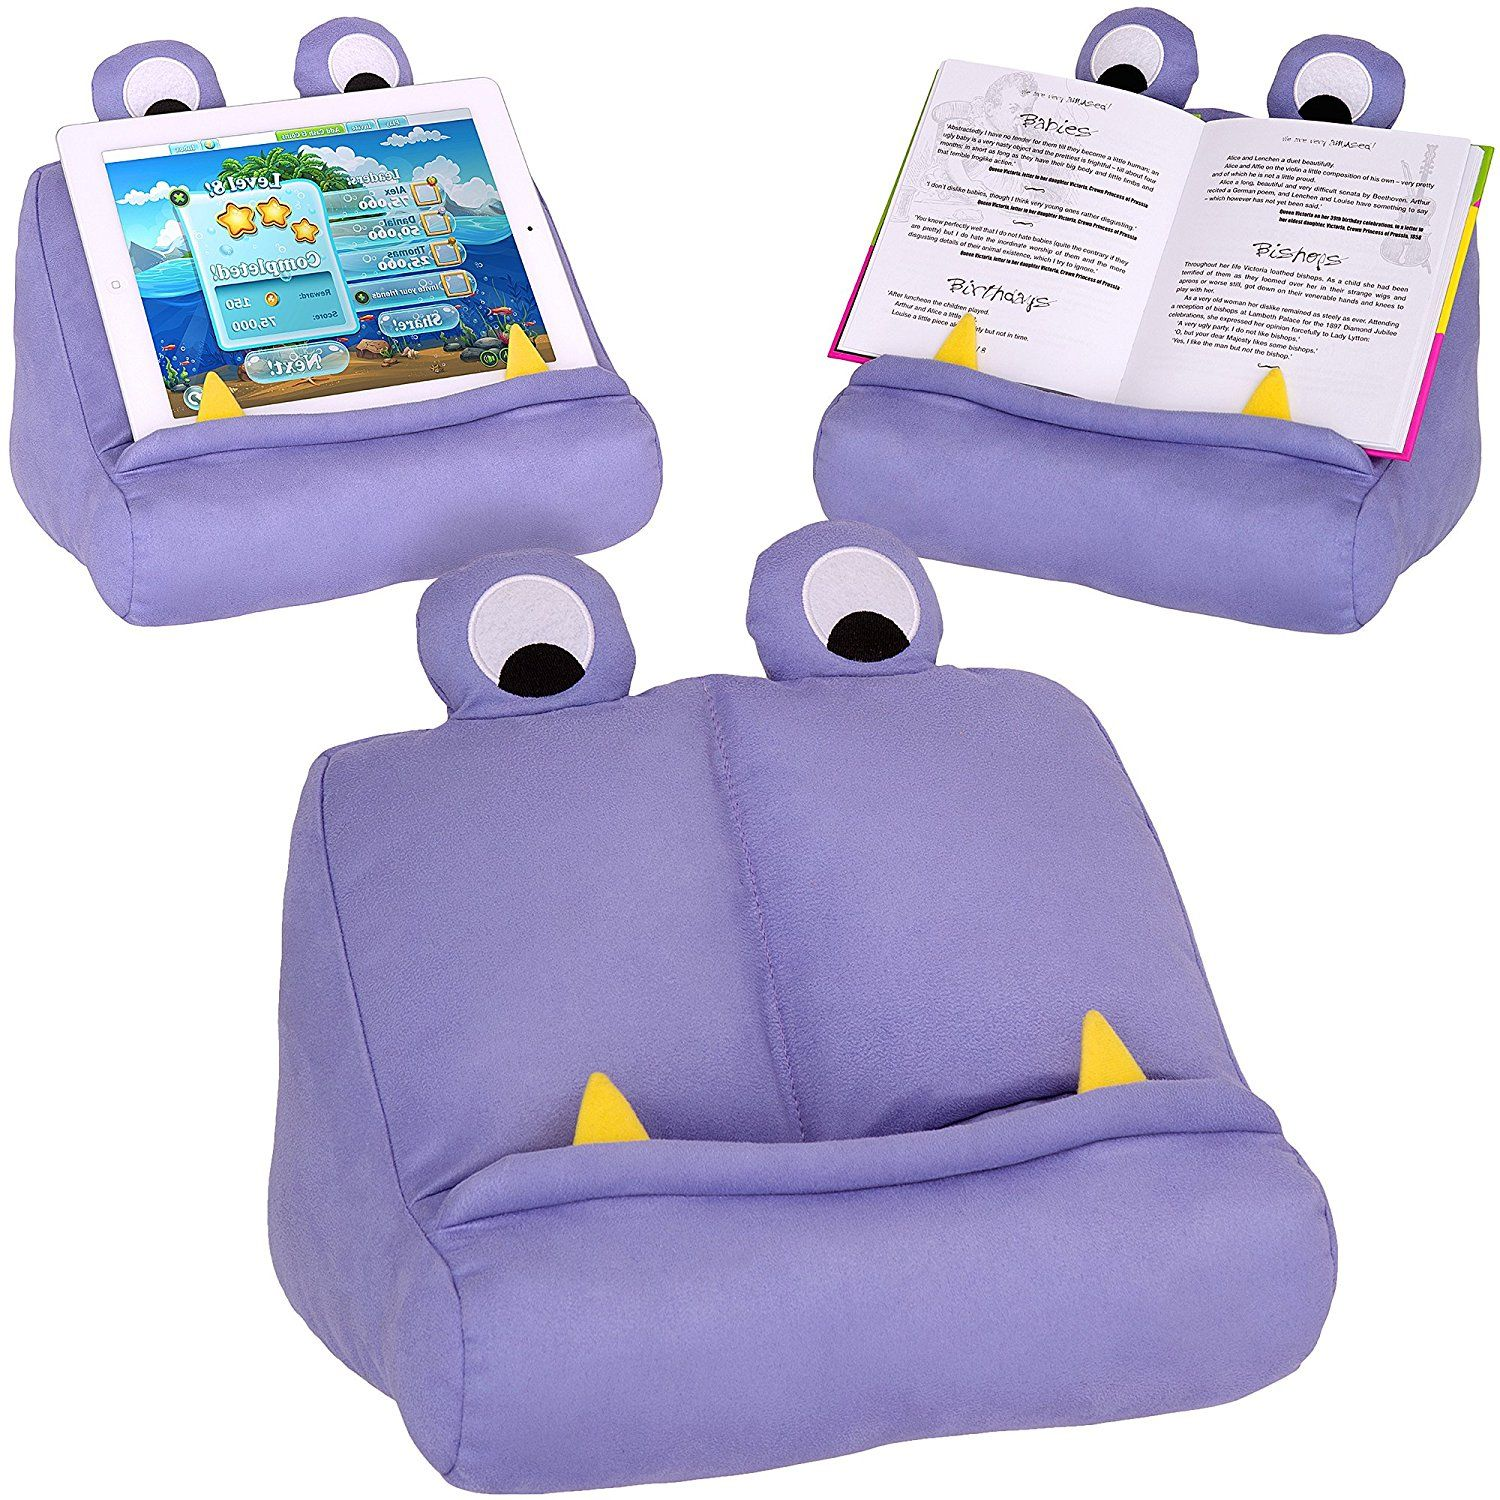 Kids ipad Tablet Holder & Book Stand * Fun Purple Book ...